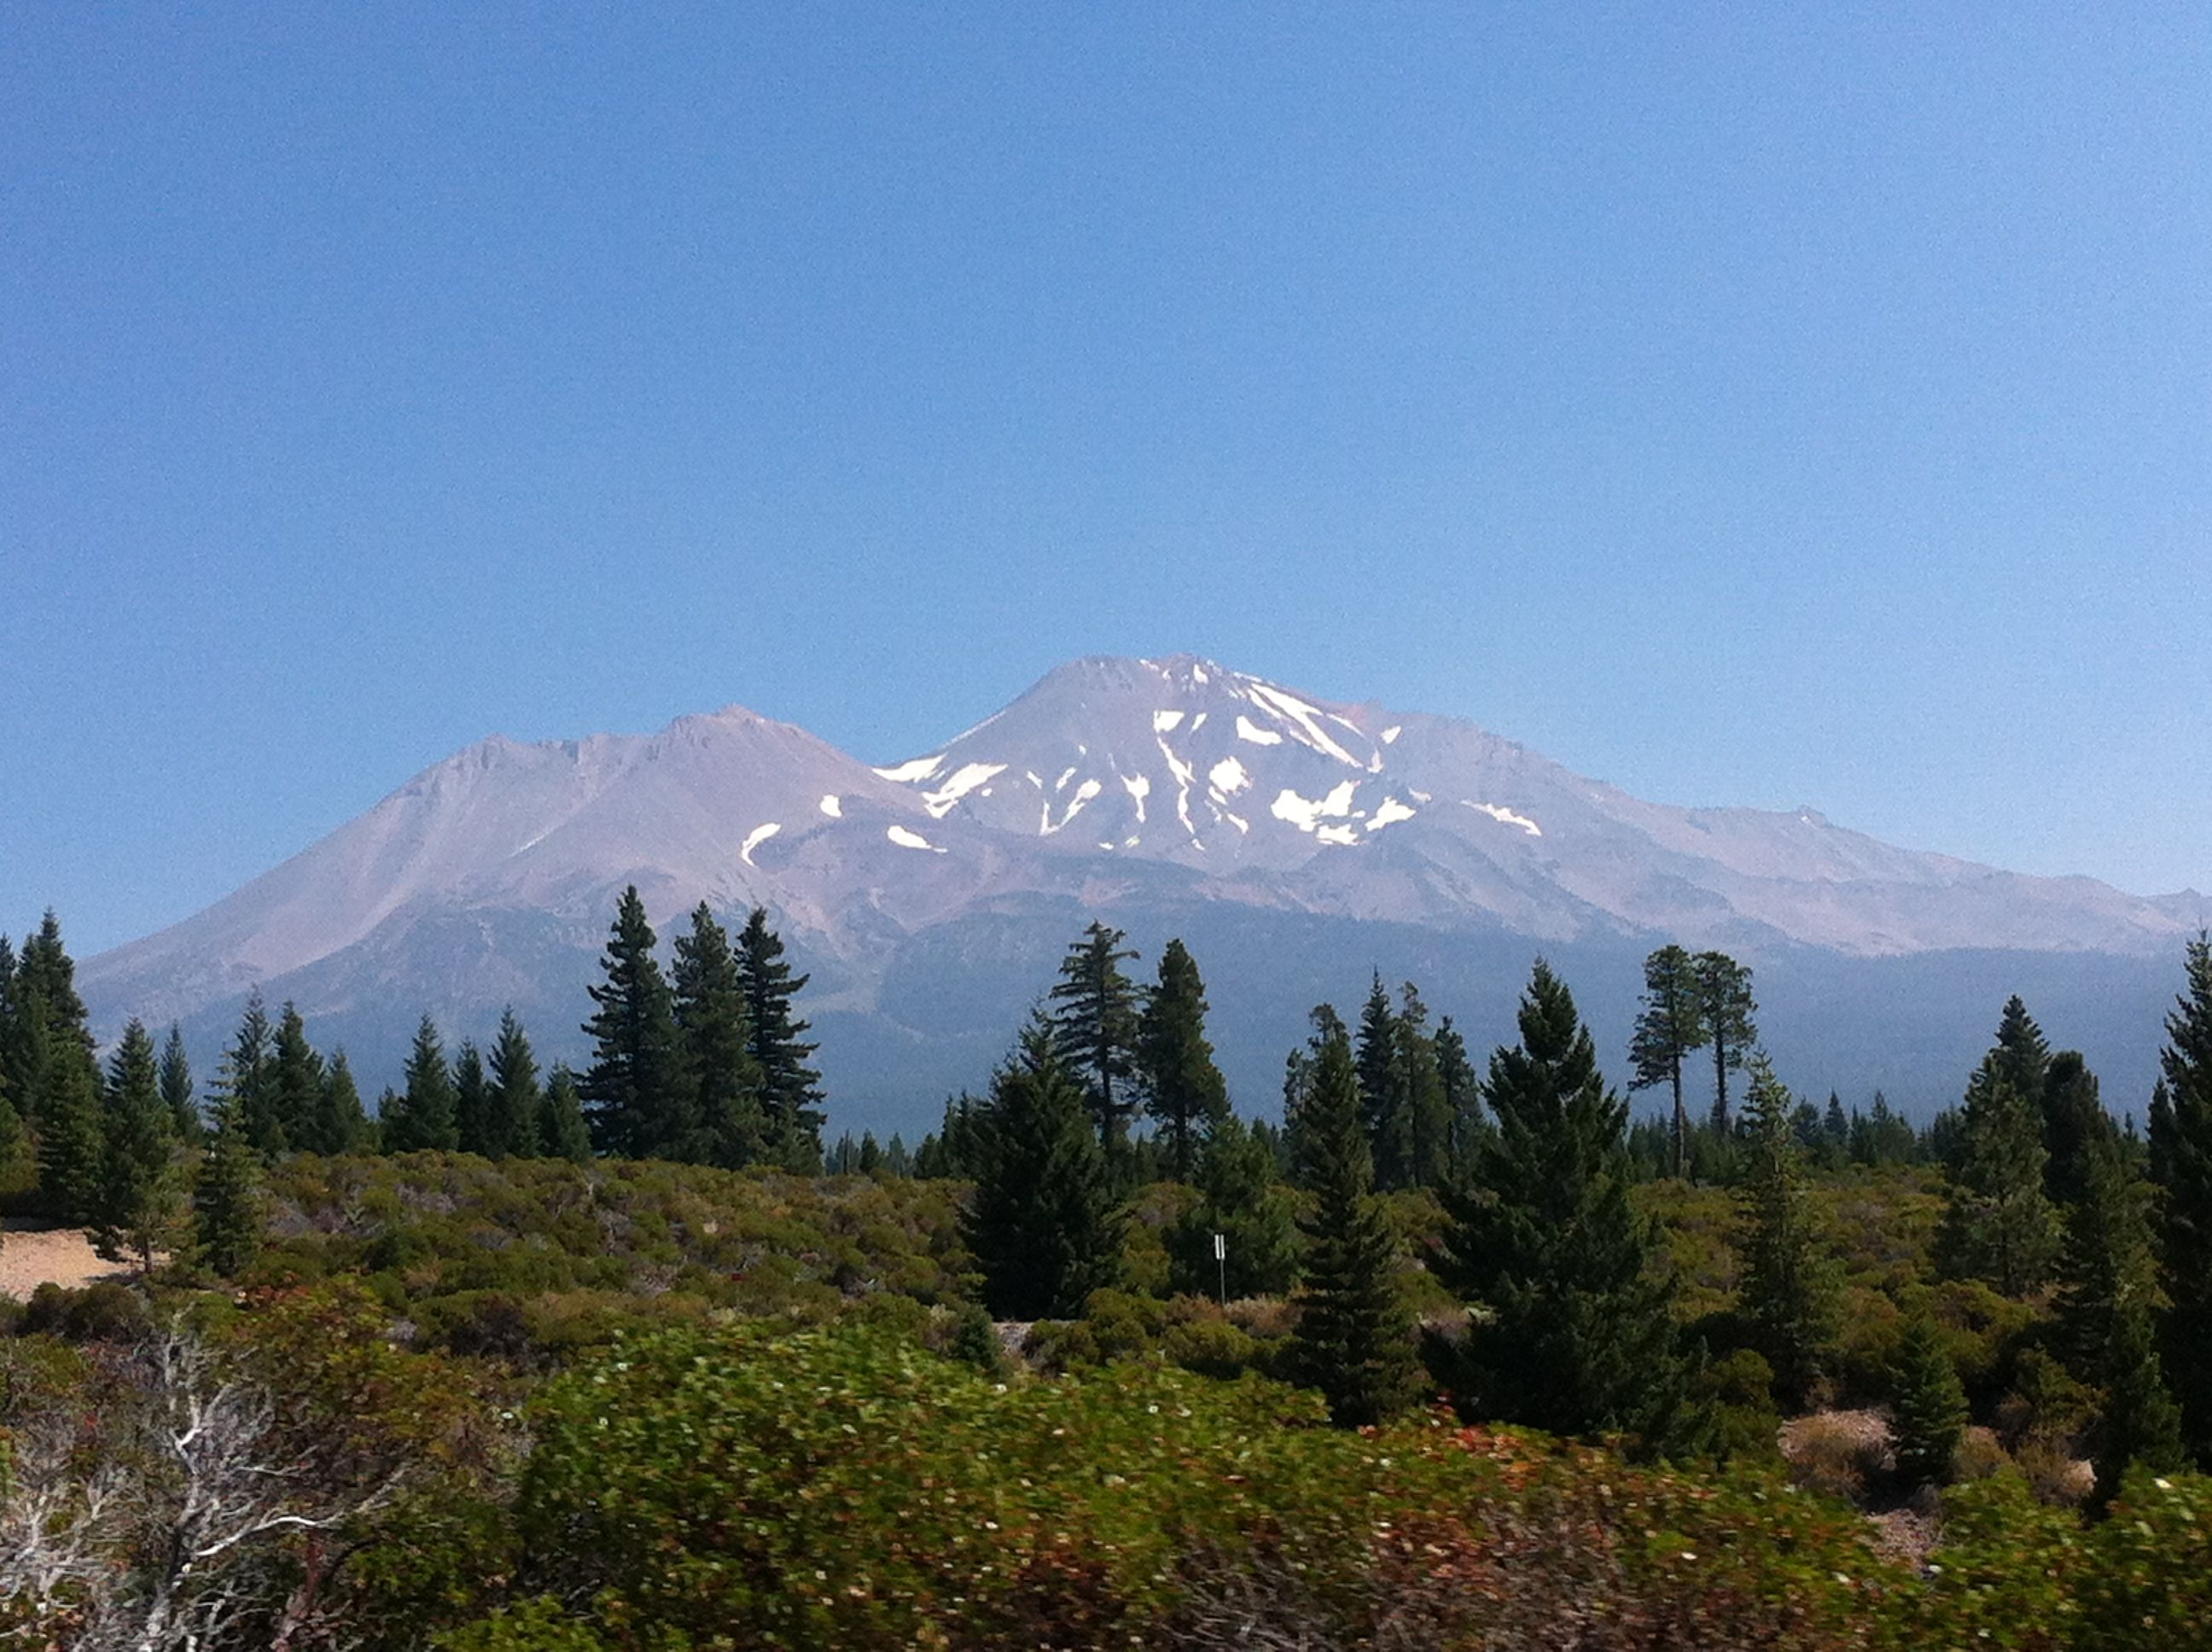 Vistas del Mount Shasta. California